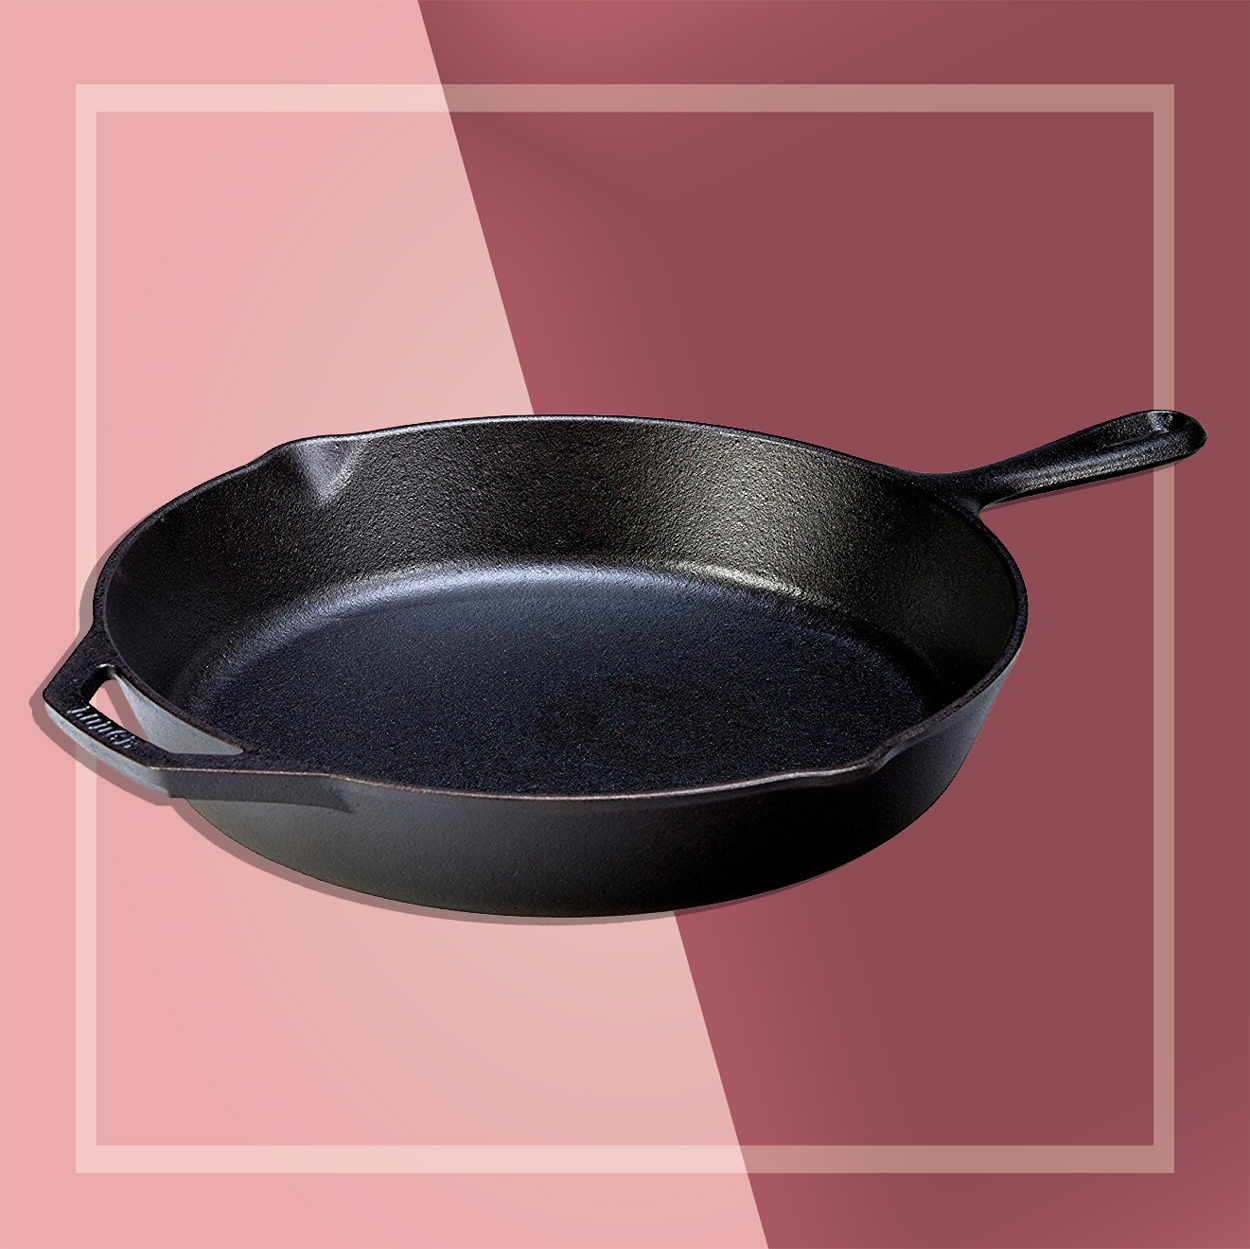 Walmart President's Day Sale Cast Iron Skillet